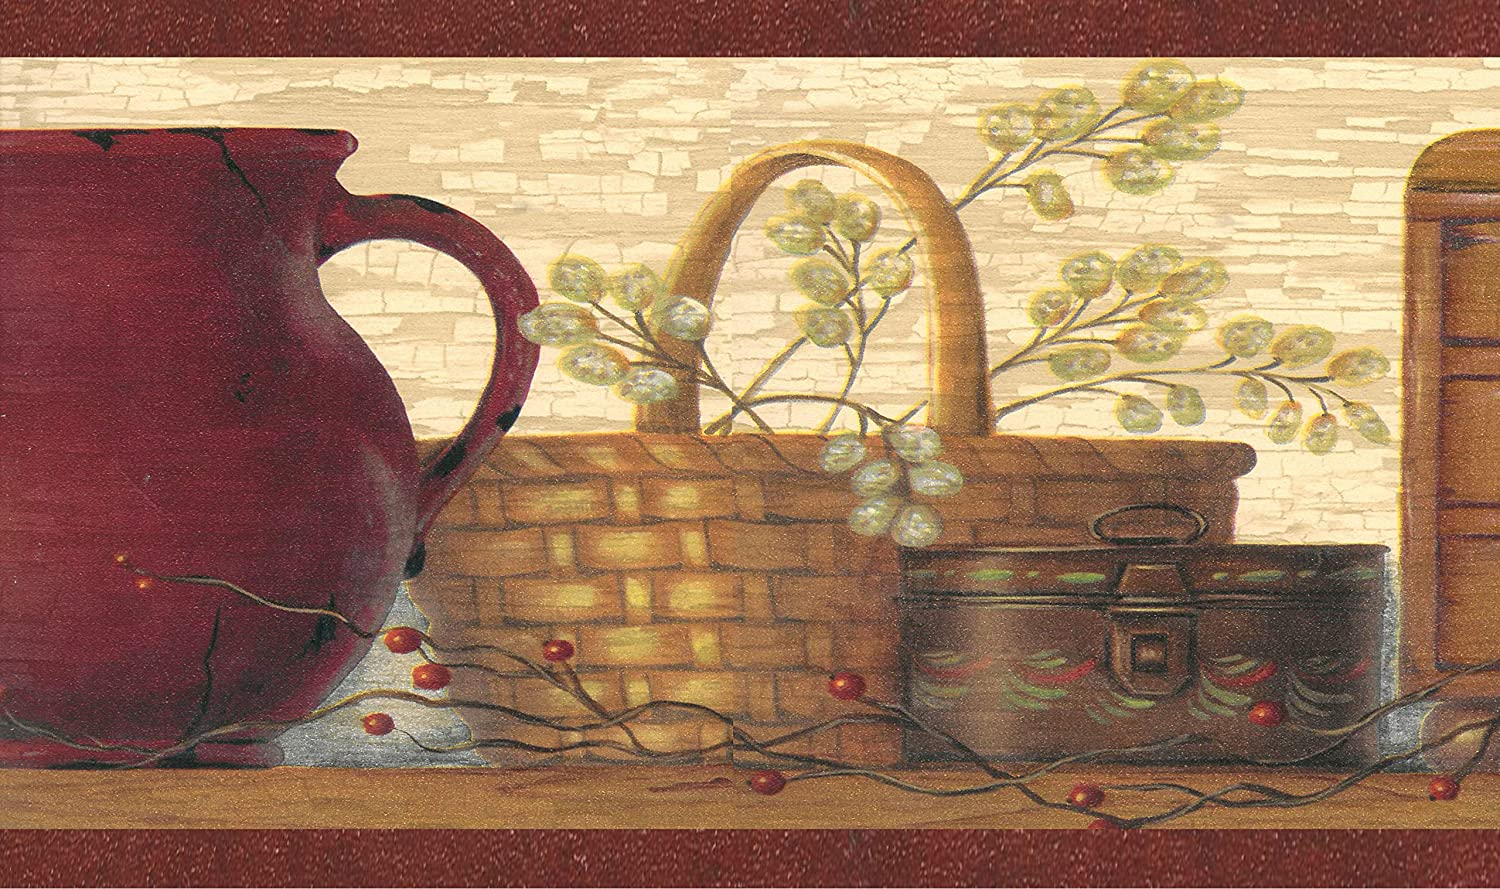 Dundee Deco BD6051 Prepasted Wallpaper Border Brown 4.57m x 17.78cm 15 ft x 7 in Chest Beige Jug Country Maroon Baskets Wall Border Retro Design